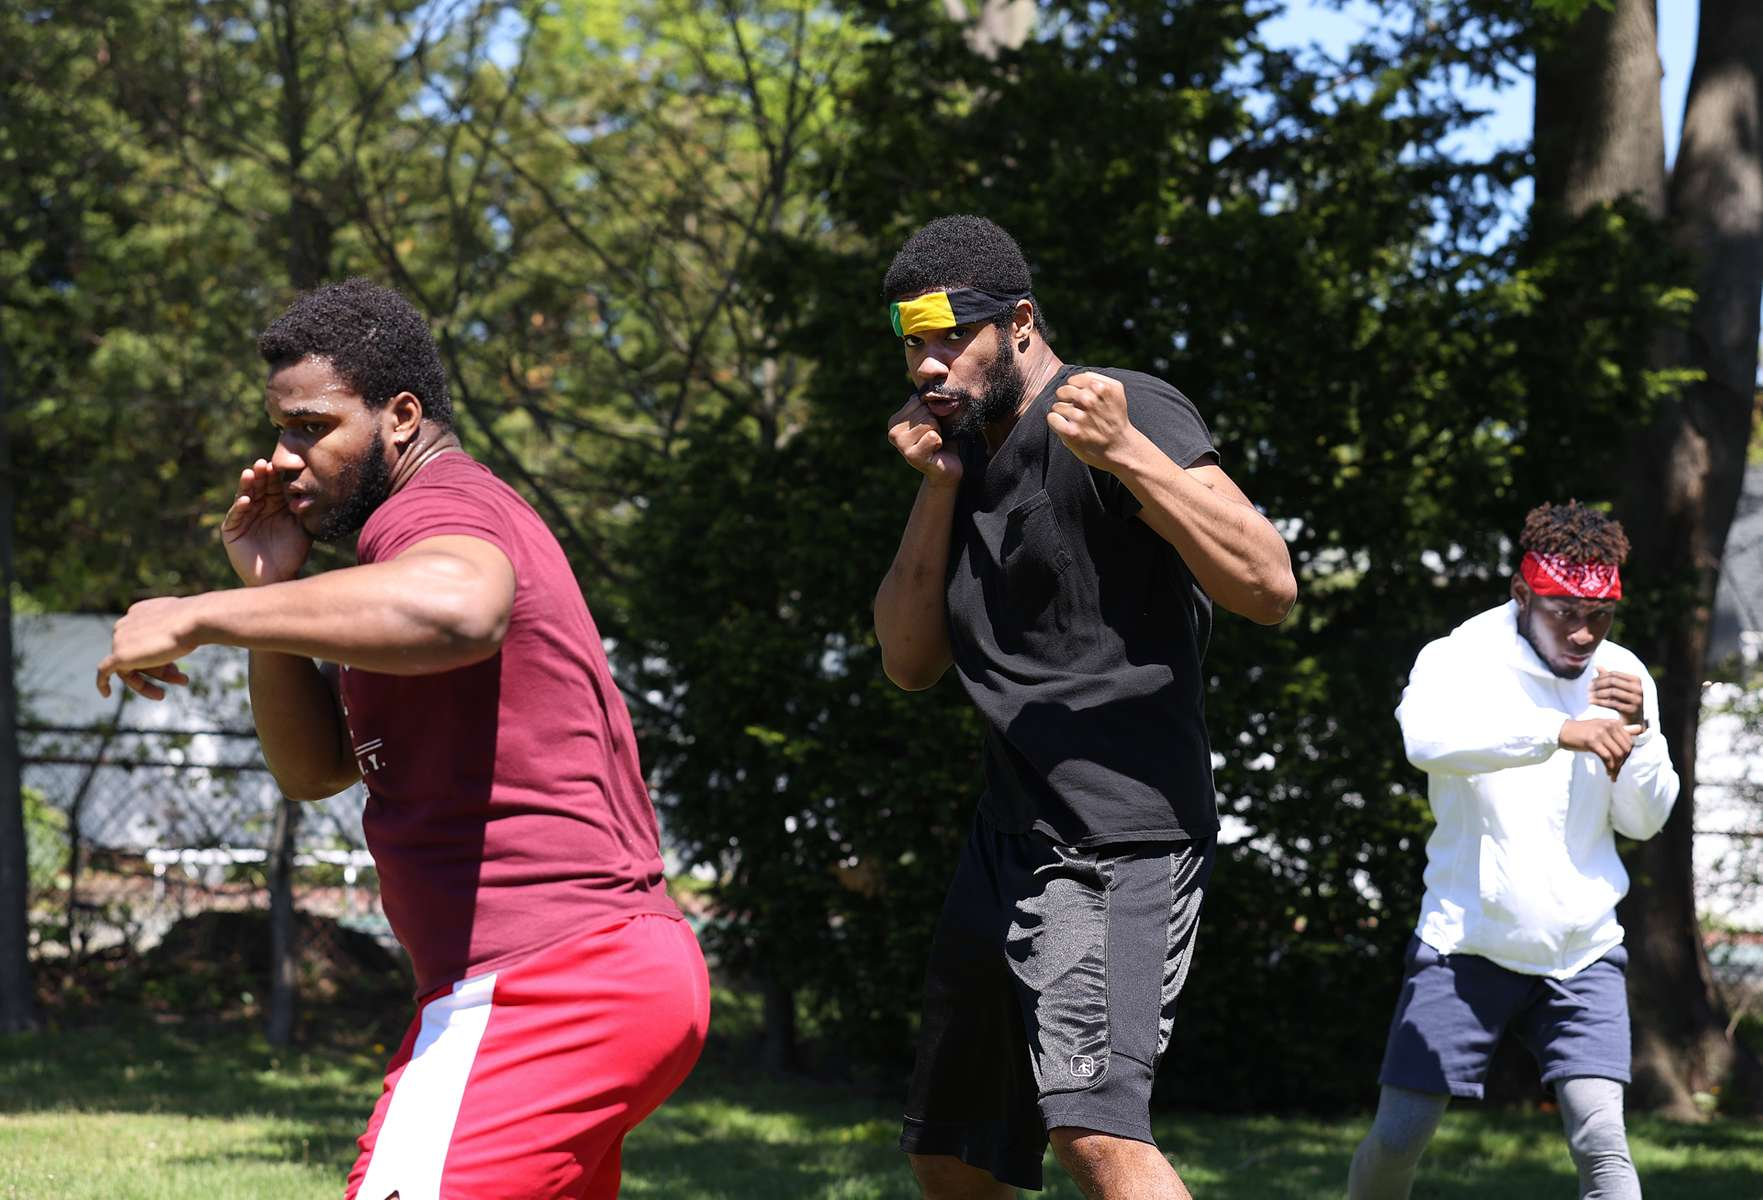 Amateur Boxers Kevens Desroches, Raymond Young, and Kerry Duperval train in the backyard of Westbury Boxing Club Trainer Matt Happaney on May 02, 2020 in Mineola, New York.  Local Amateur Boxers have continued To train as best they can during coronavirus COVID-19 Pandemic.  The World Health Organization declared coronavirus (COVID-19) a global pandemic on March 11th.